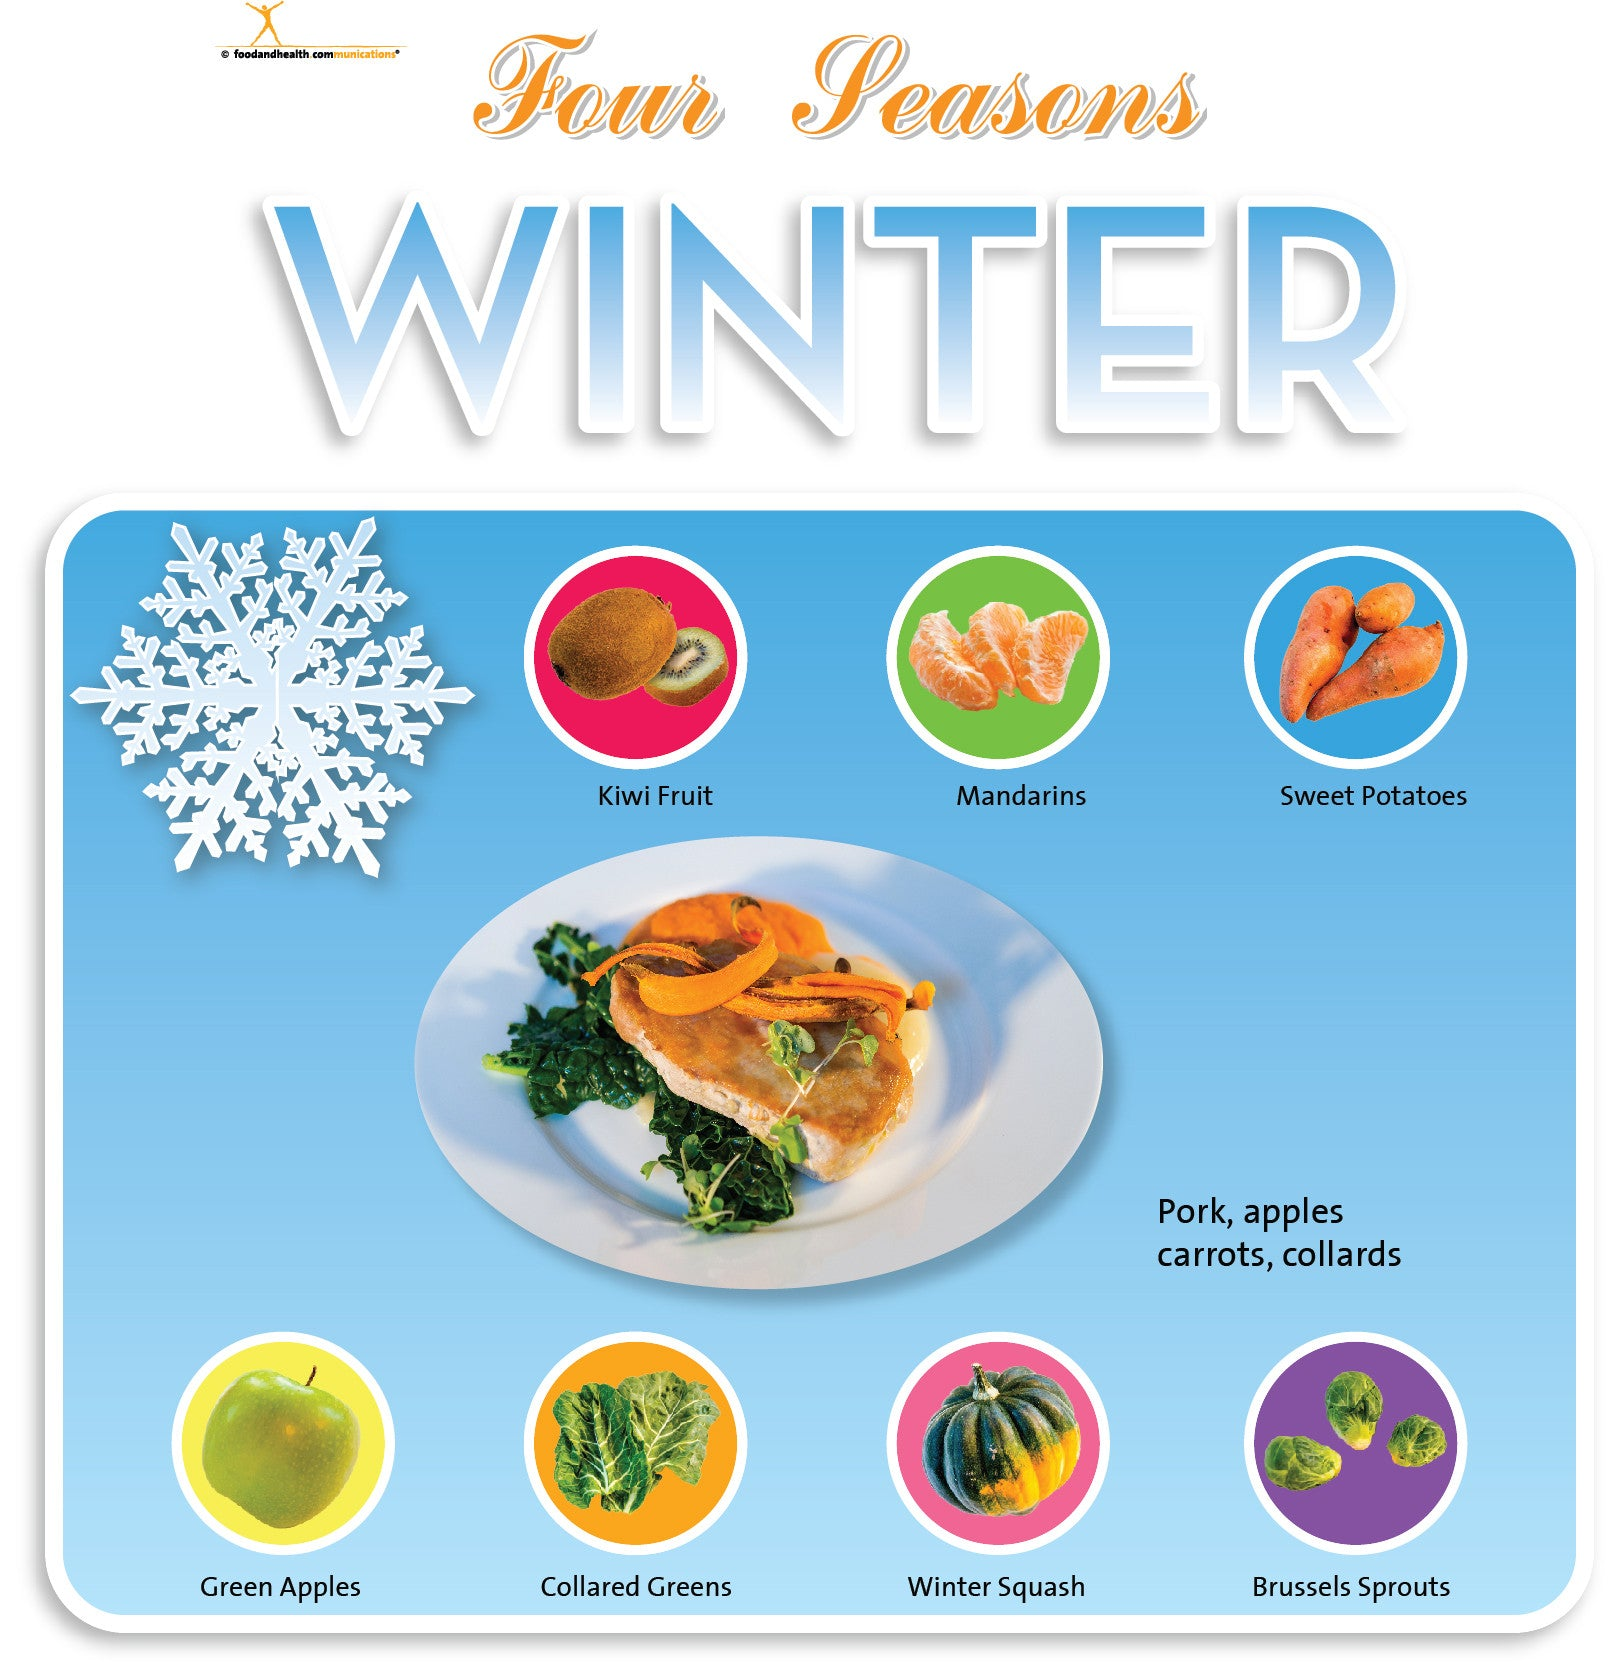 "Winter Season Bulletin Board Banner 24"" x 24"" Square Banner for Bulletin Boards, Walls, and More - Nutrition Education Store"